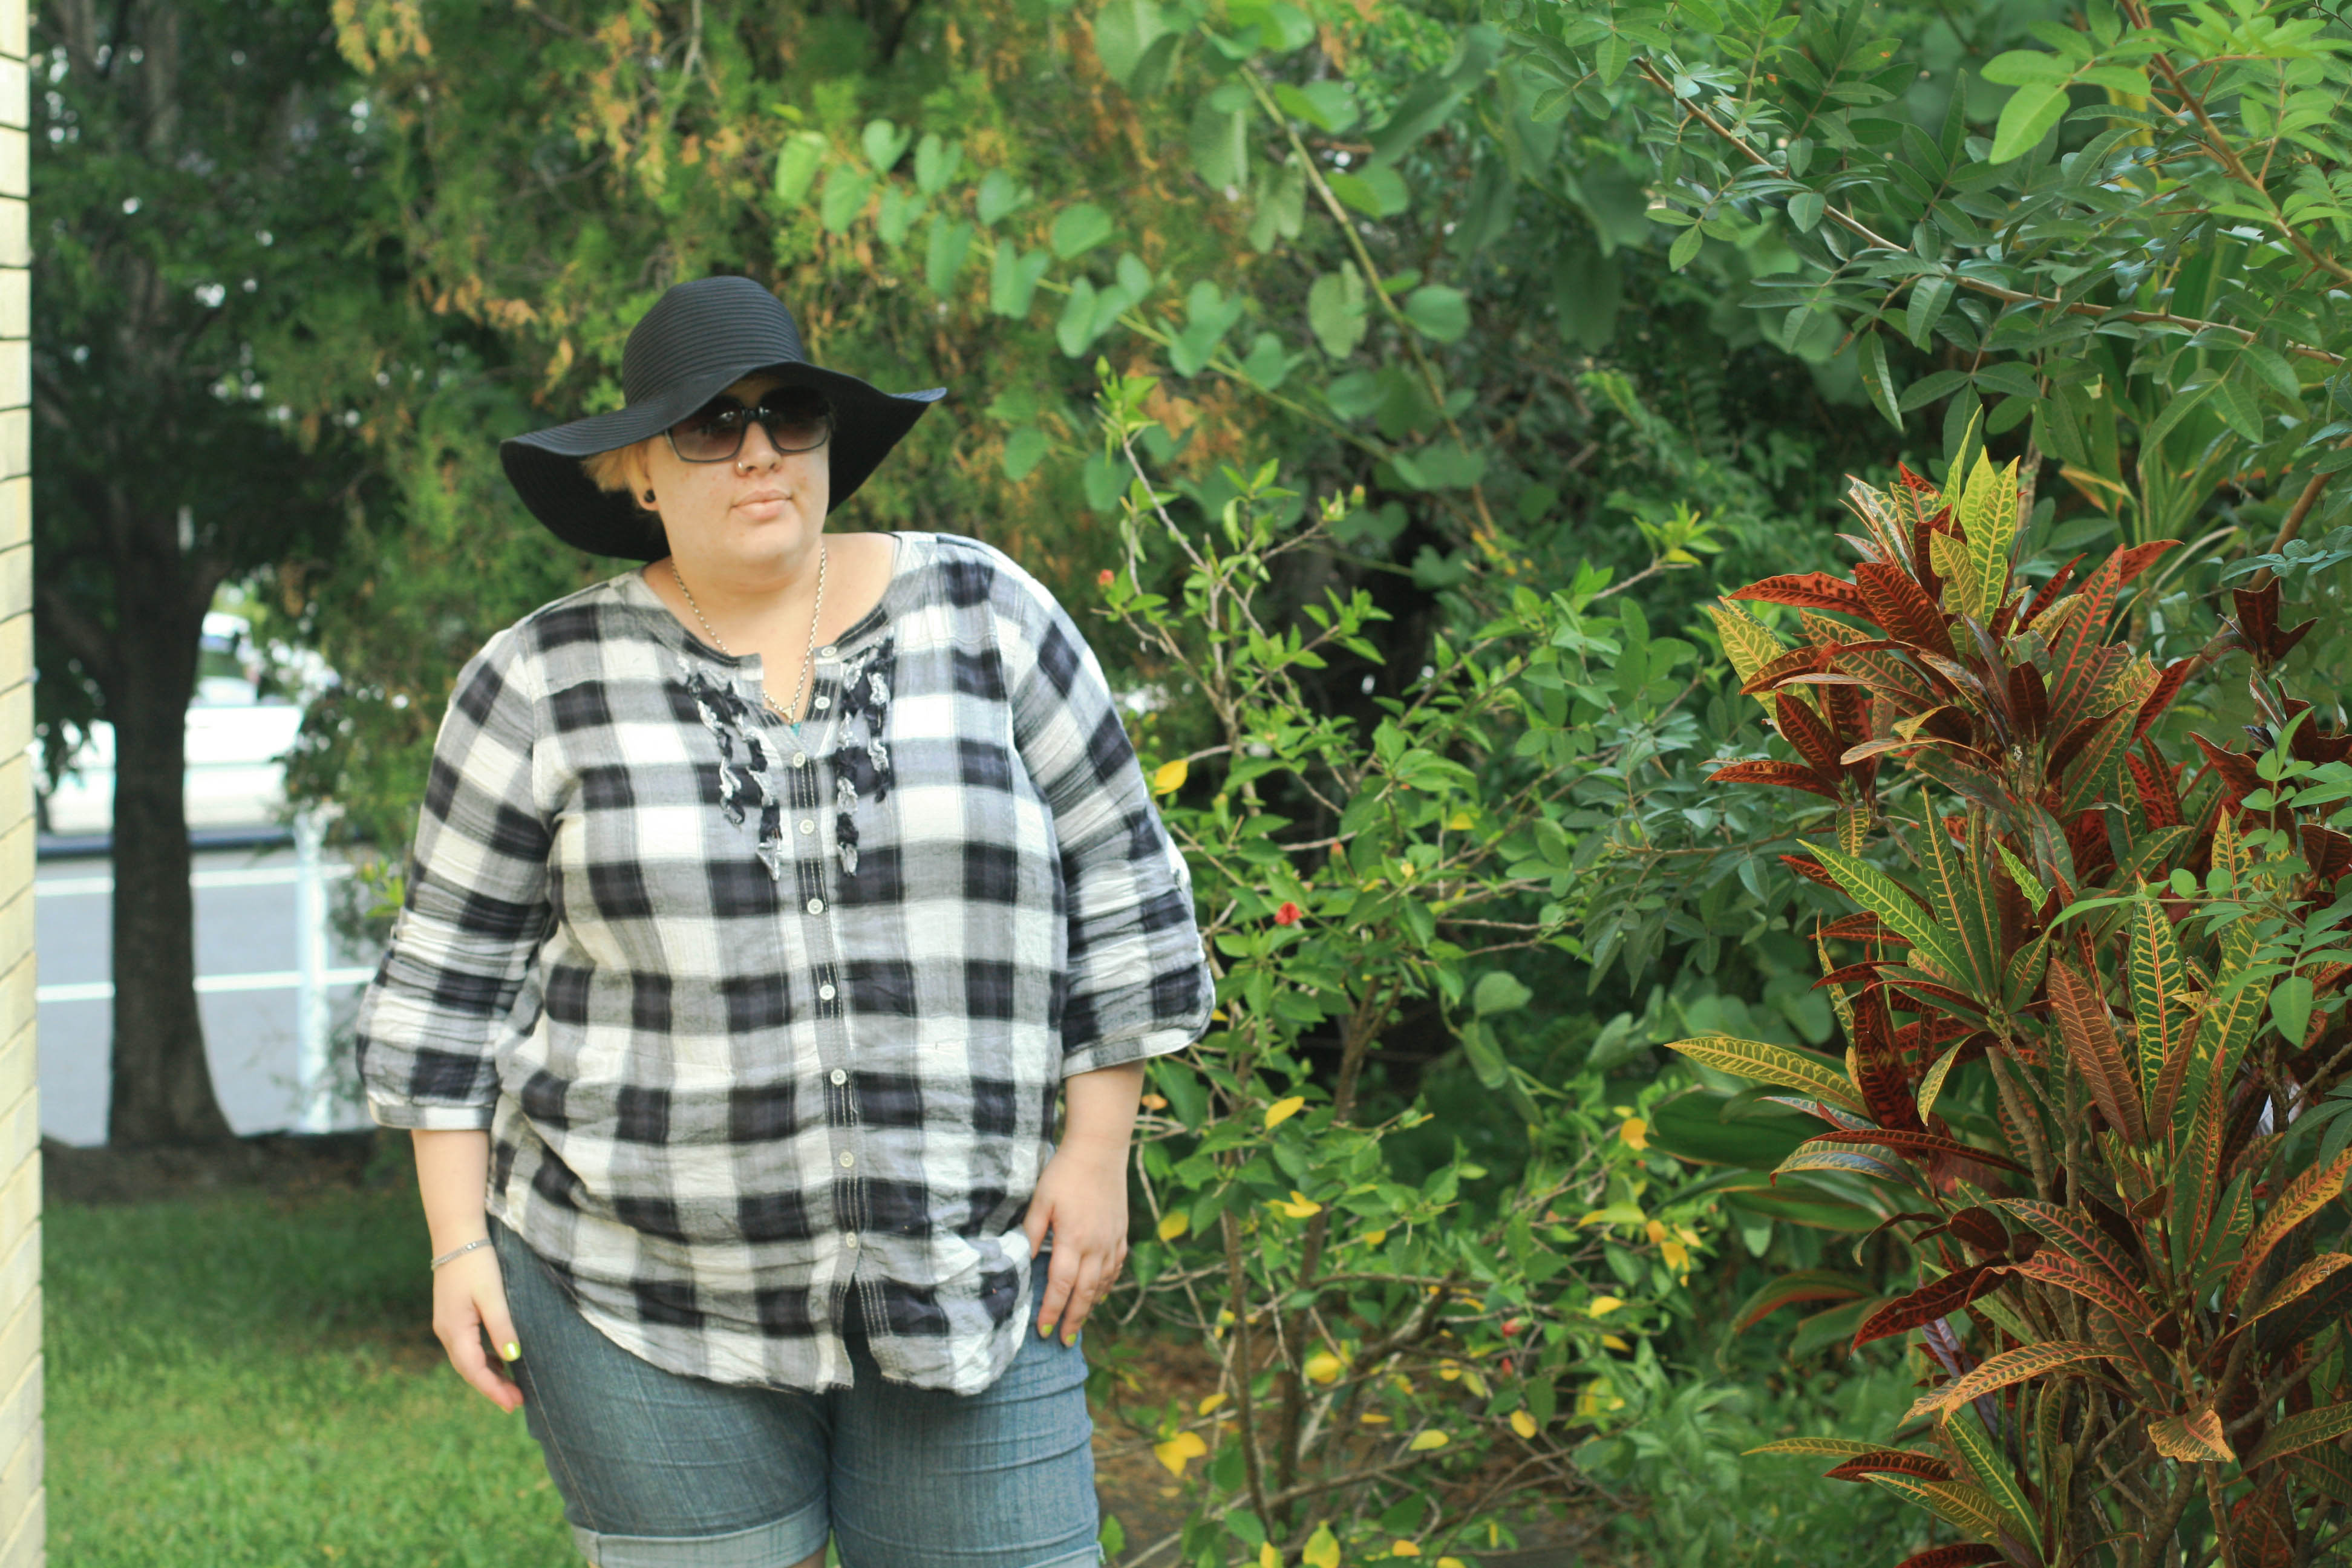 Photo of me standing in the garden wearing a black and white tartan tunic with shorts and a big black hat.